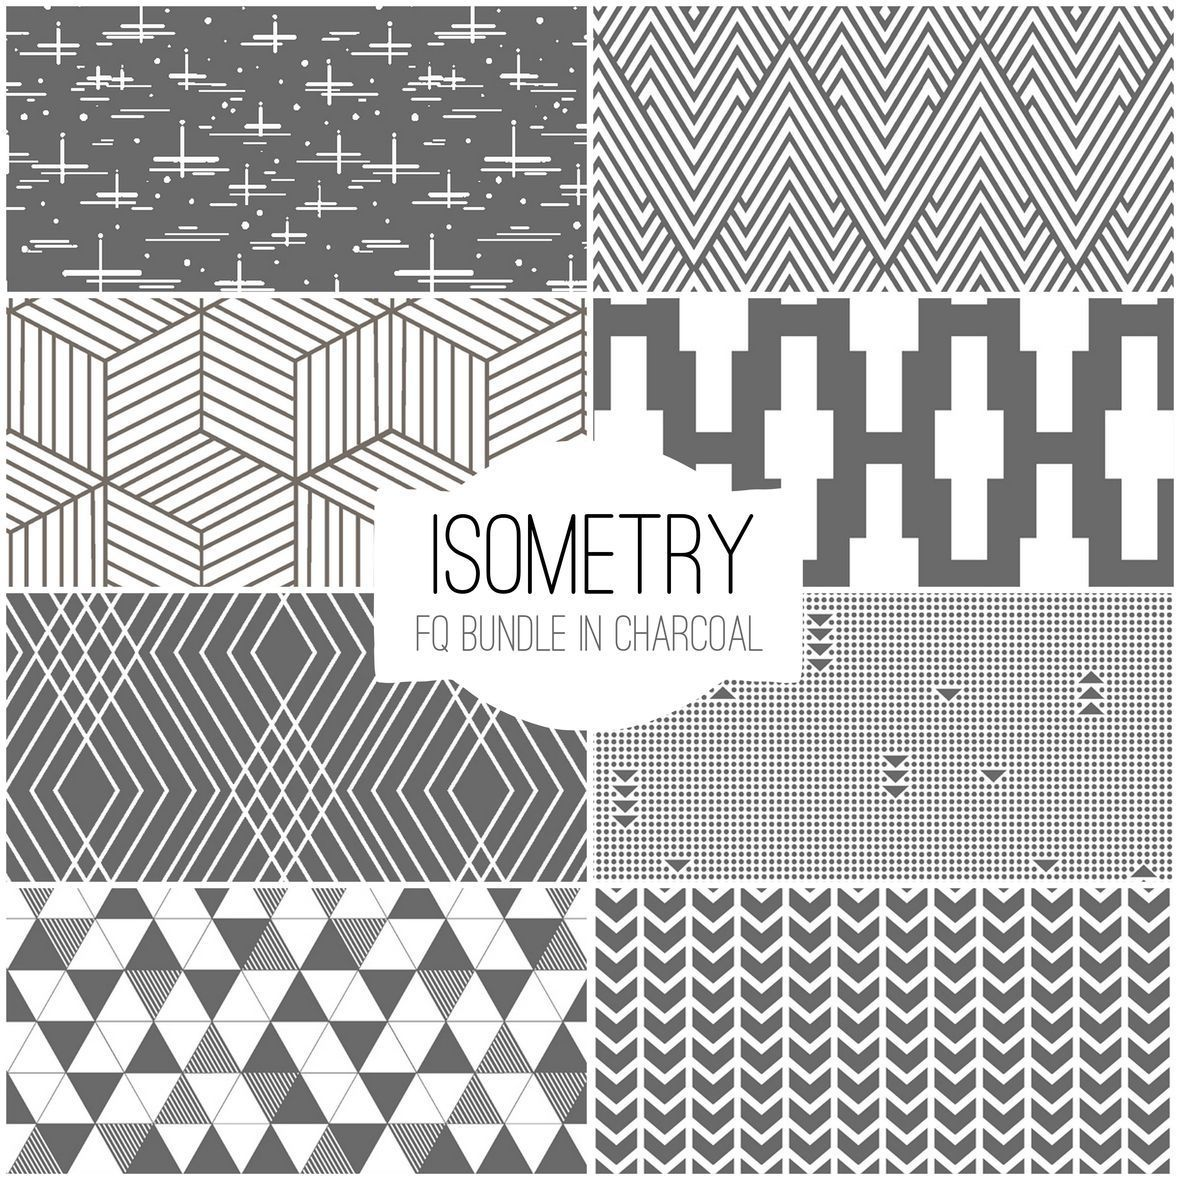 Isometry in Charcoal